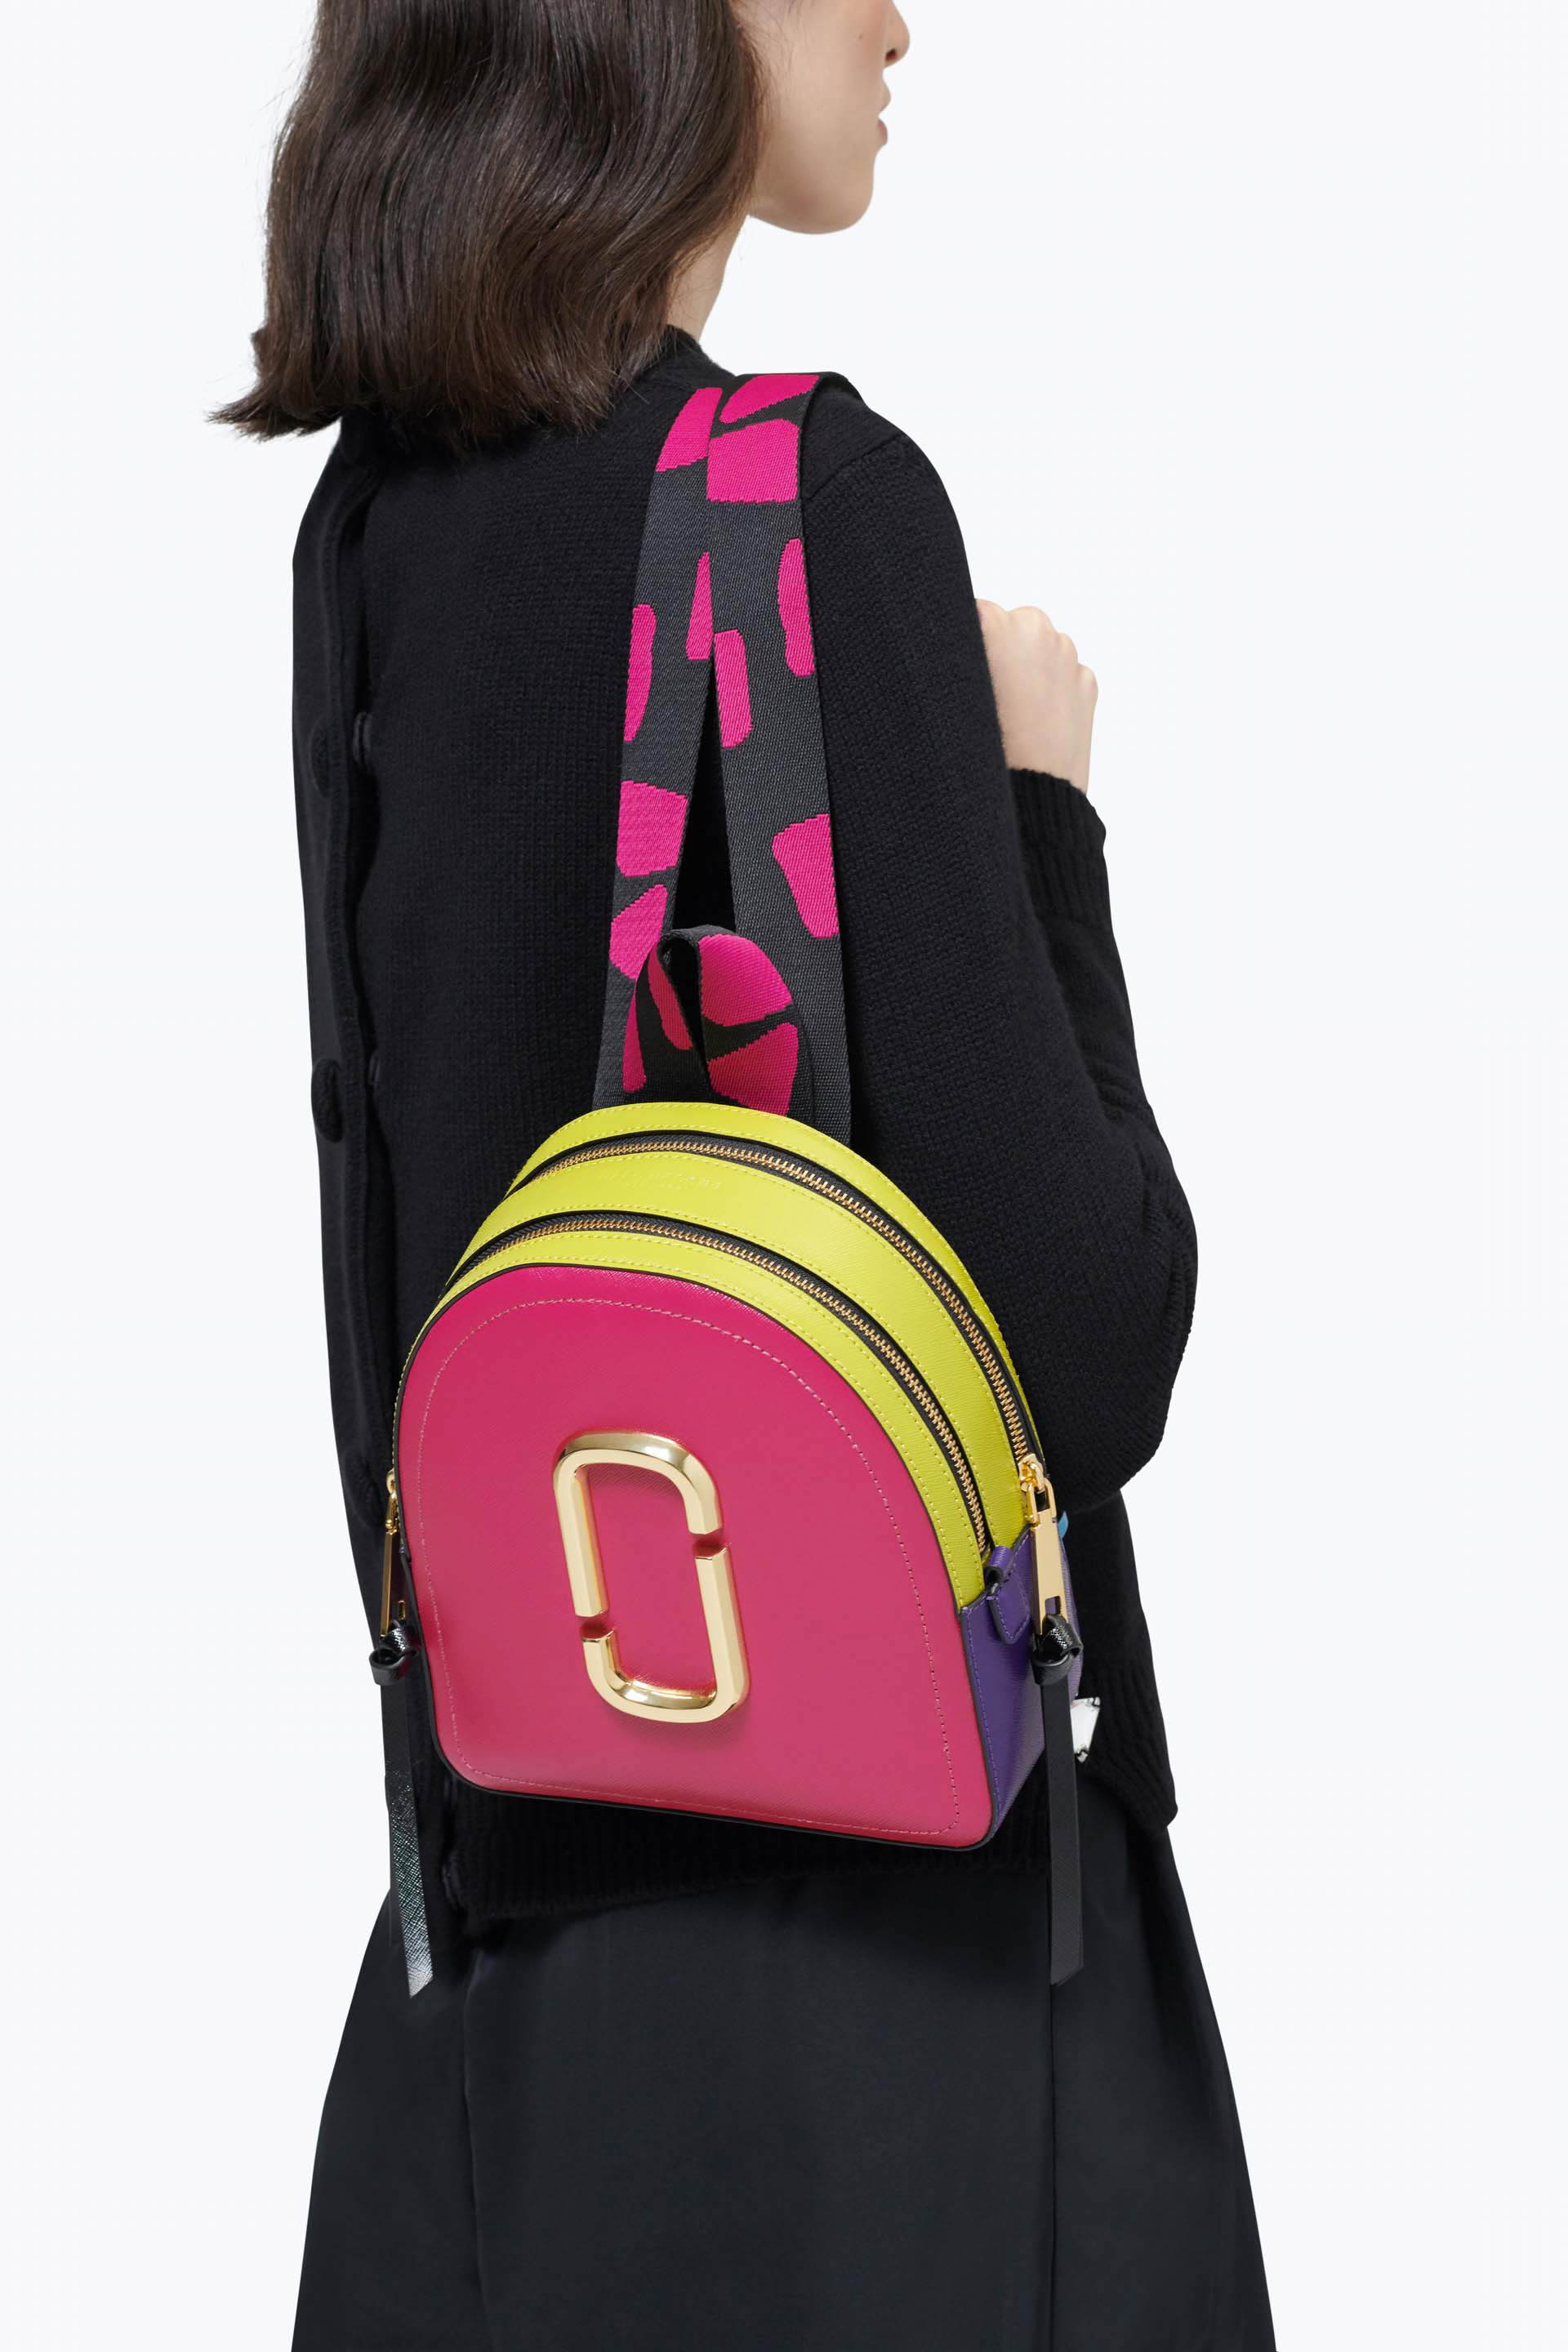 MARC JACOBS(マークジェイコブス) バックパック